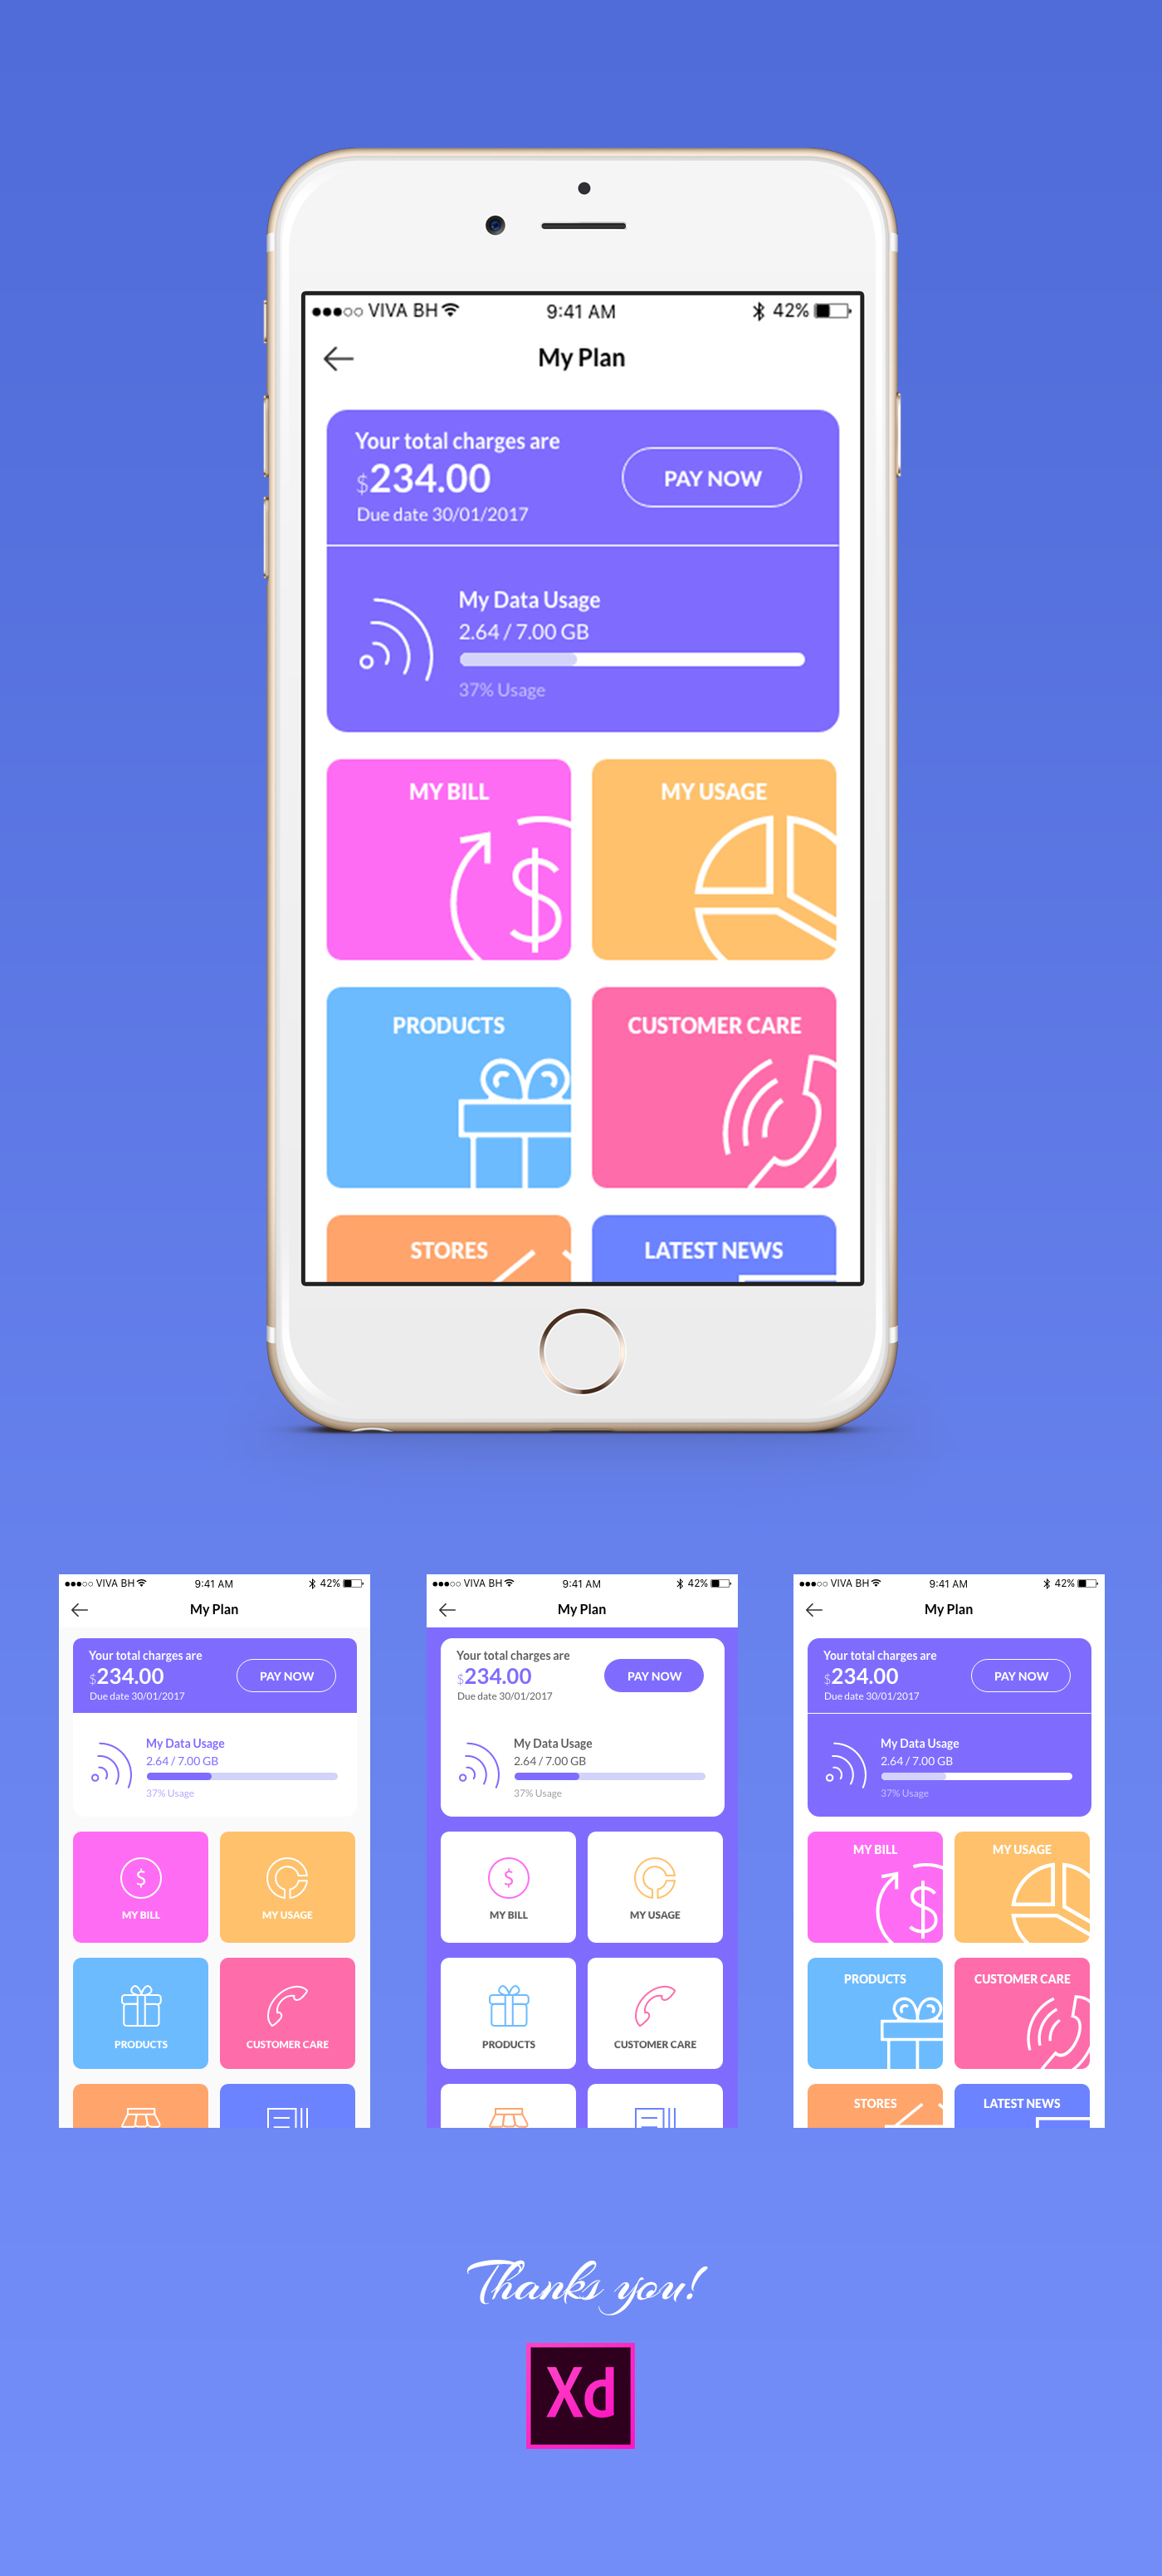 Adobe illustrator mobile app template free vector download.